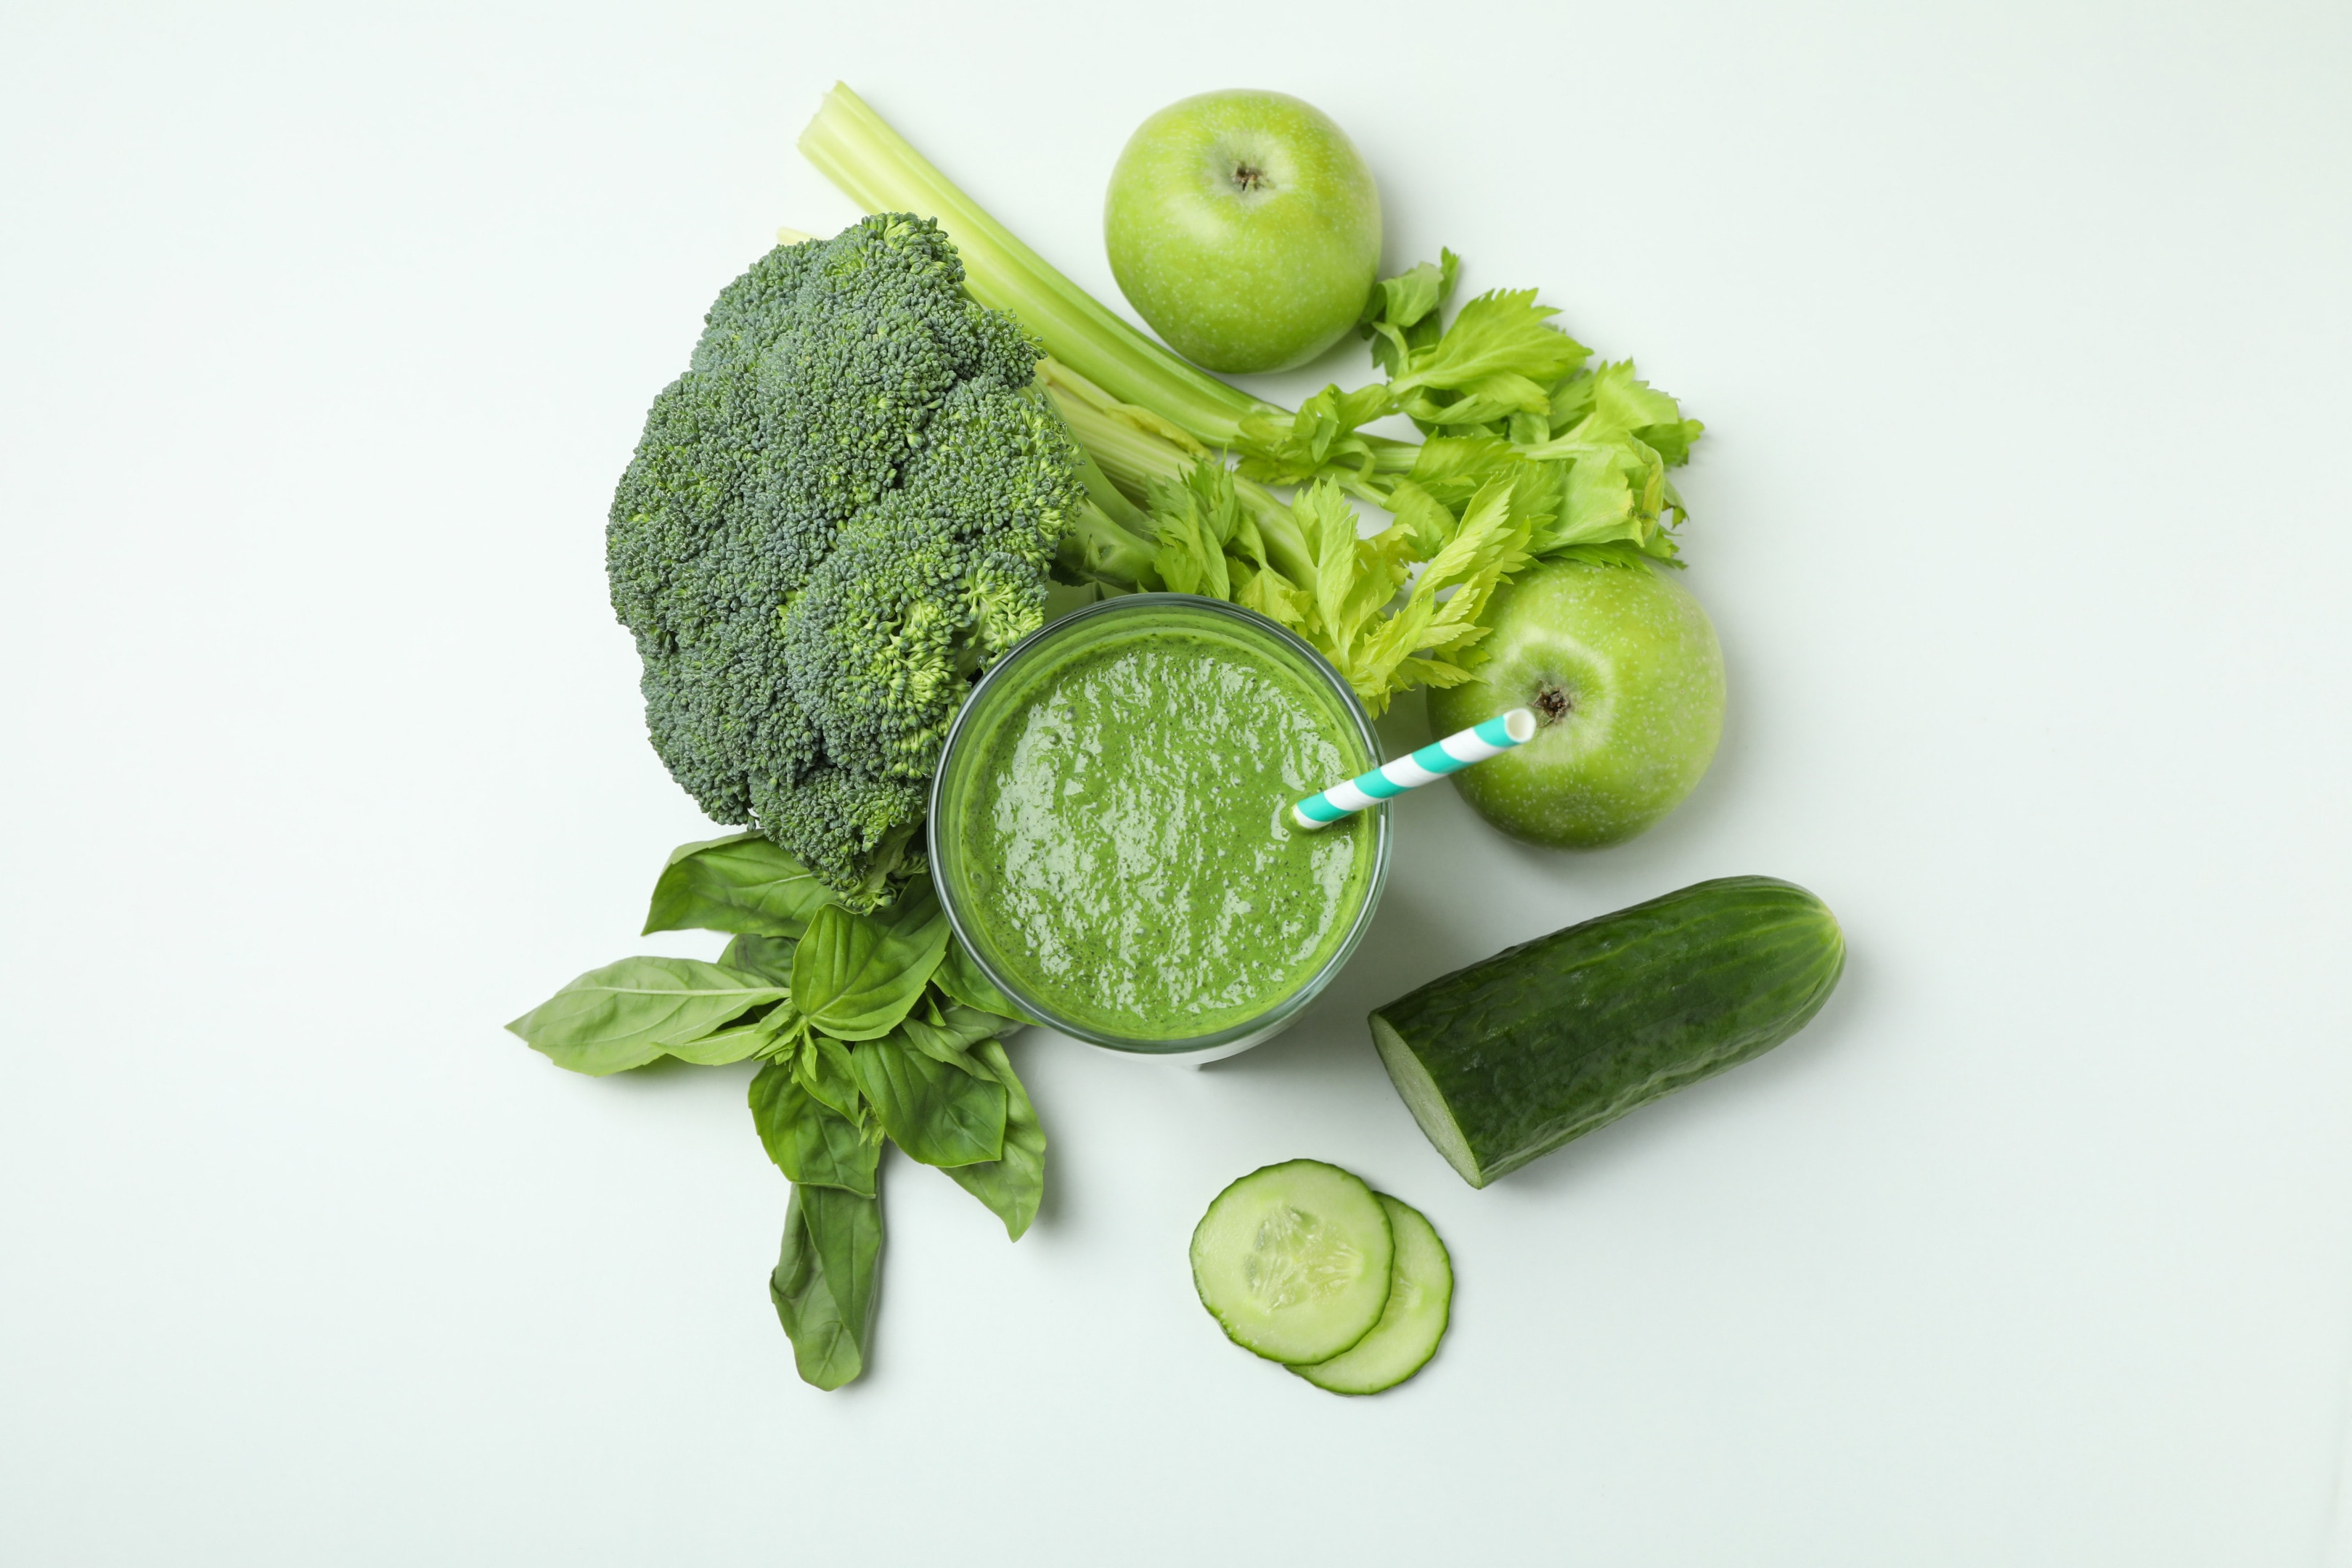 Glass of green smoothie and green leafy vegetable on white background